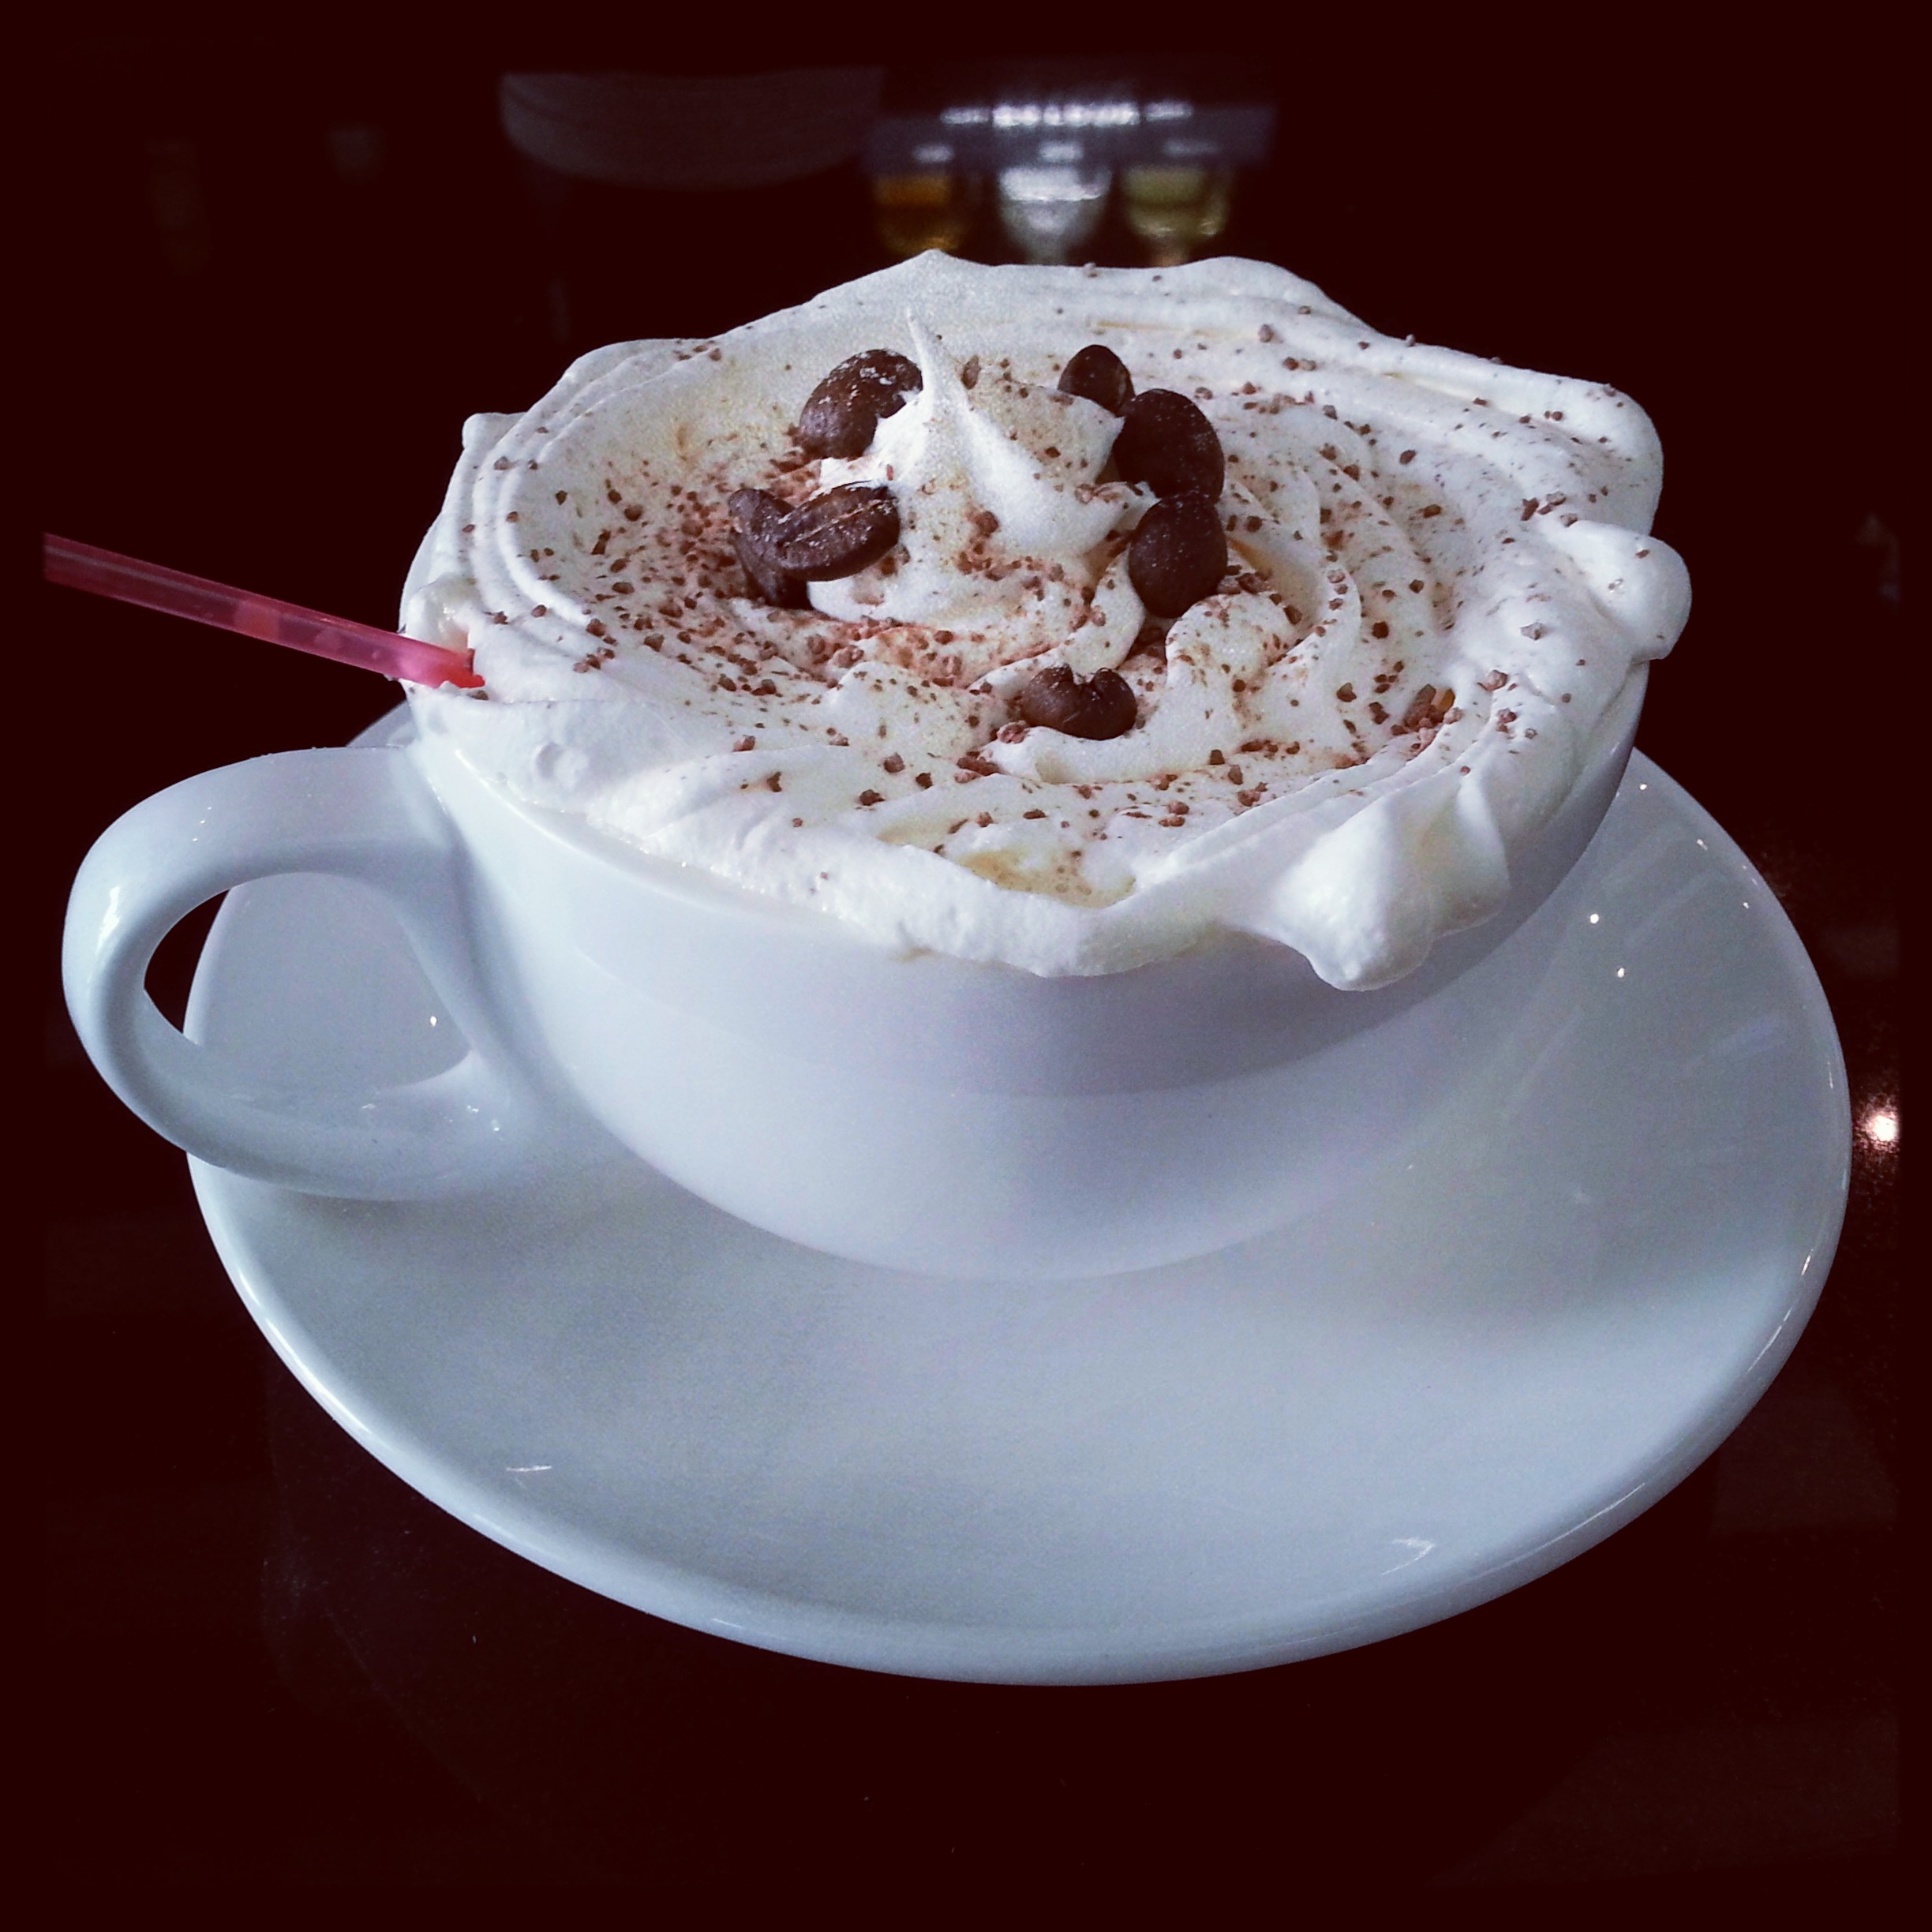 Hot Mexican Coffee topped with whipped cream, cinnamon and coffee beans. Yum!